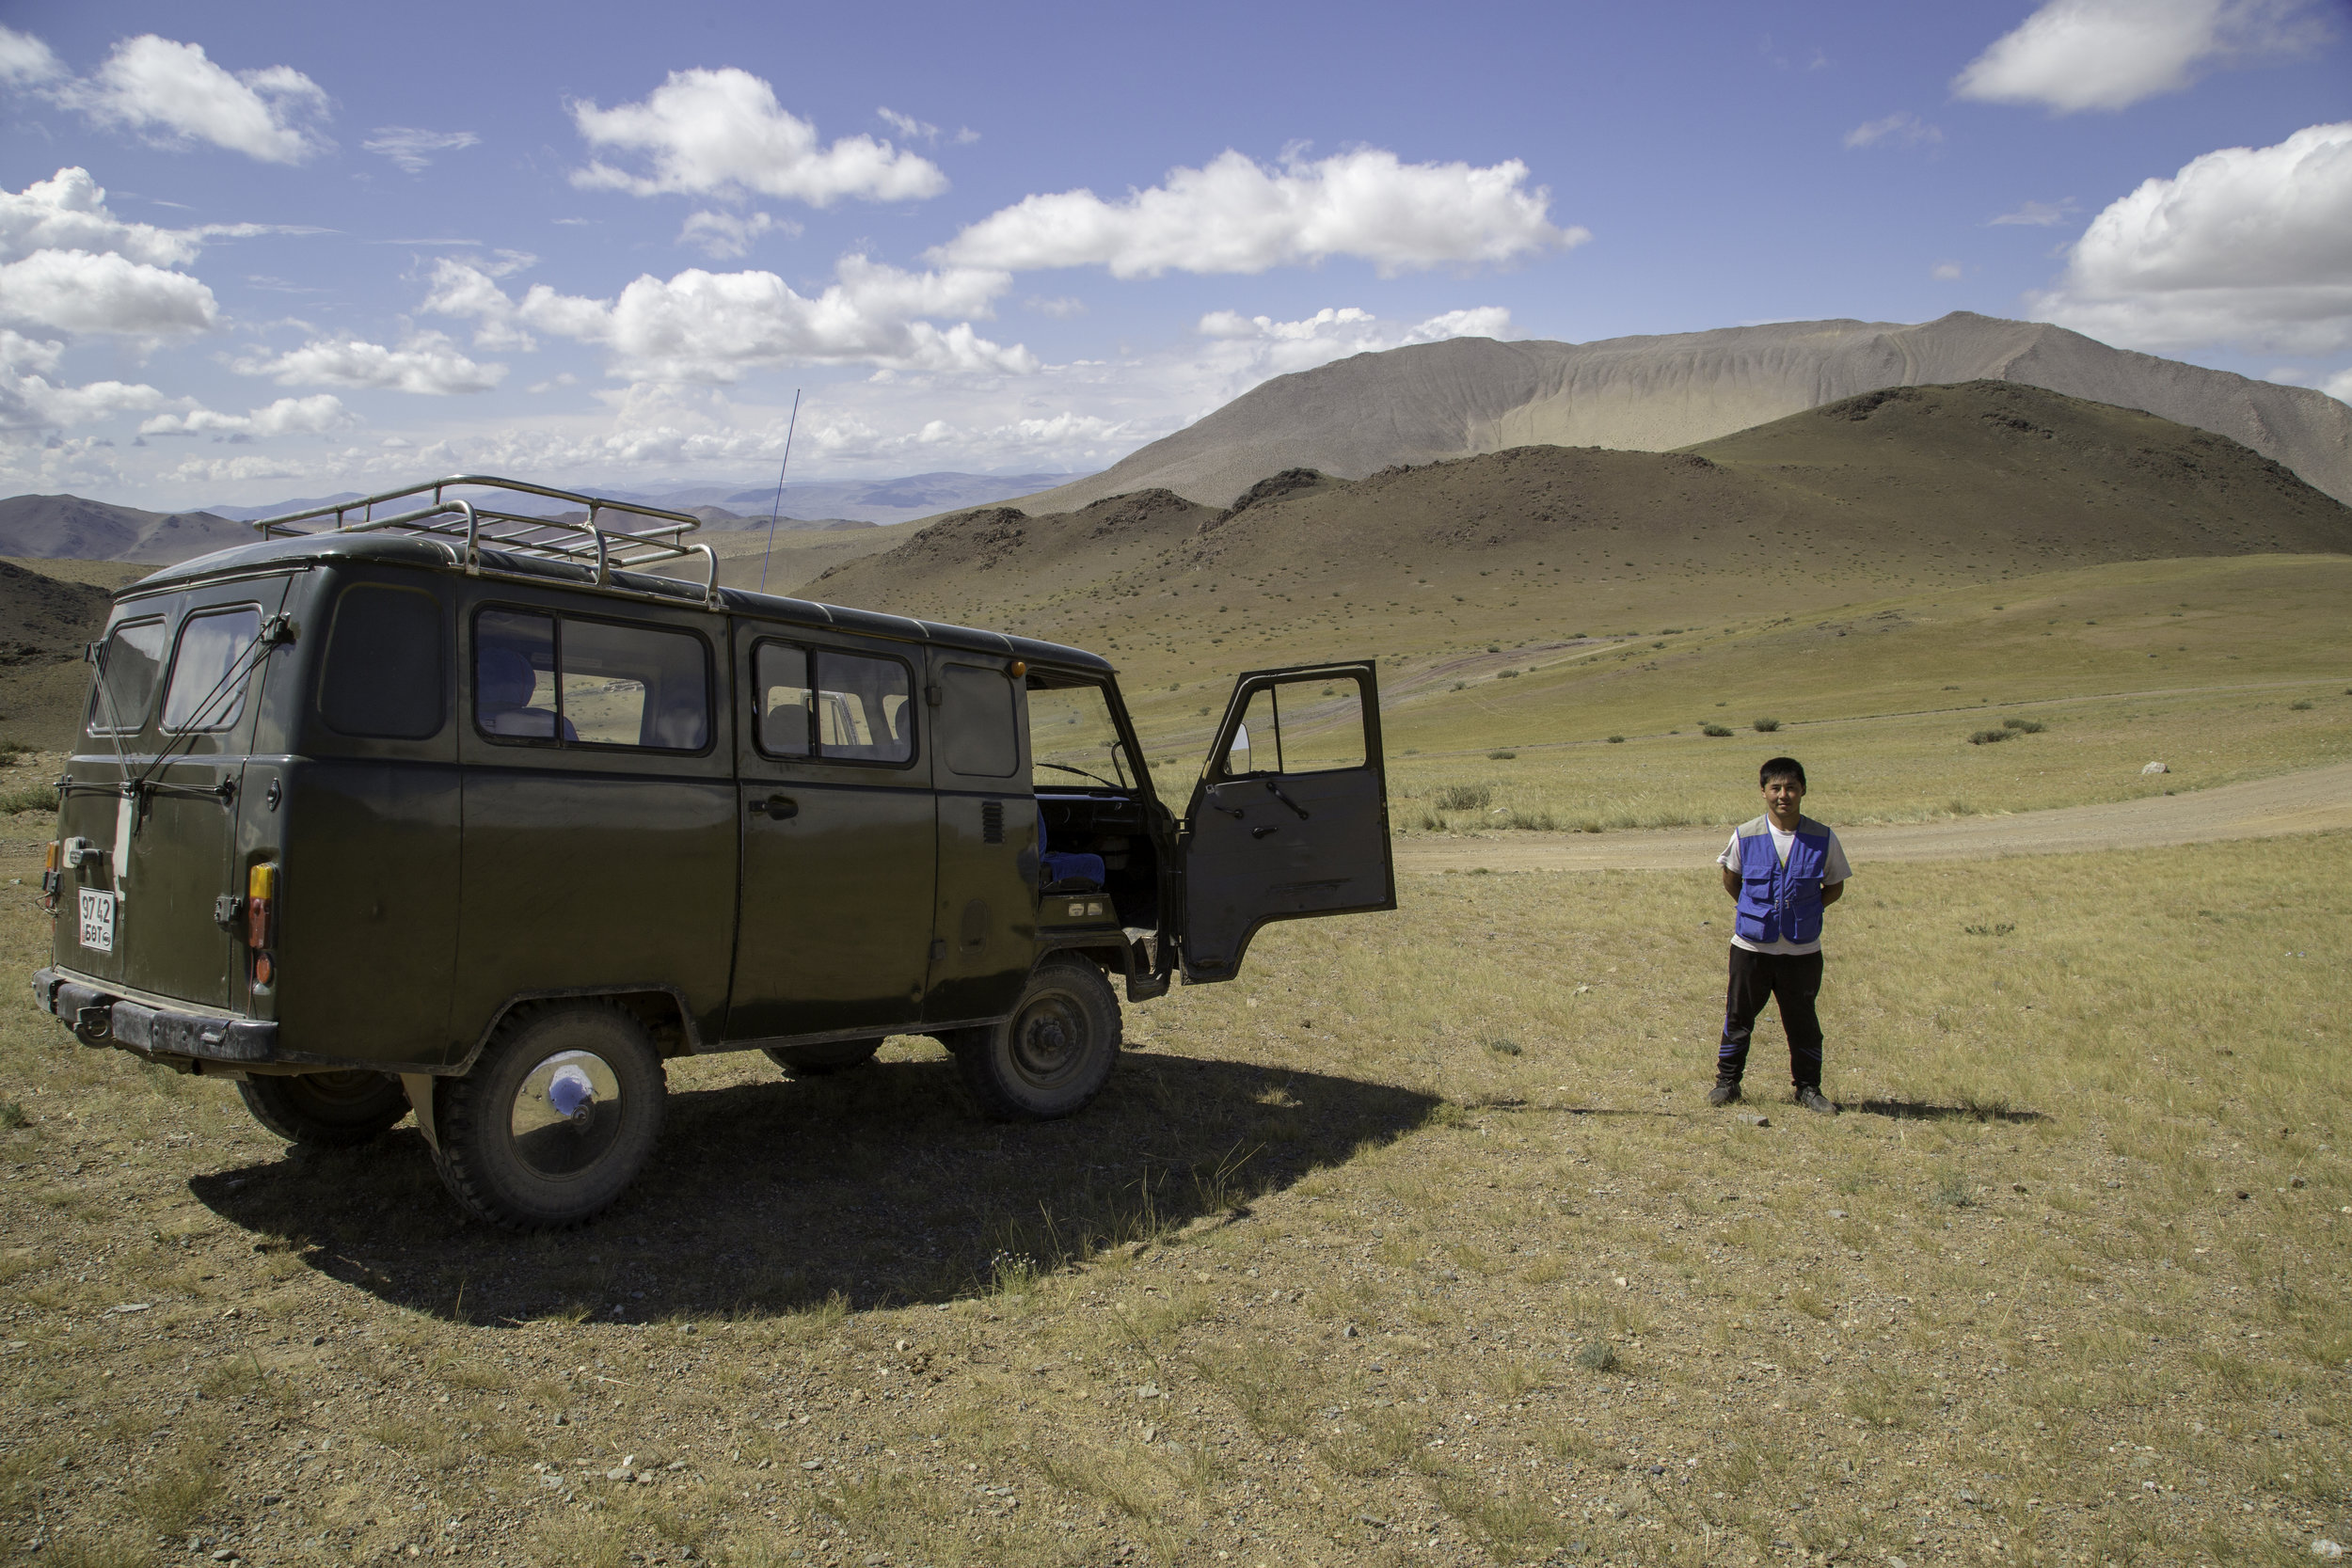 It eventually warmed up back at 2,000 metres on our way back to Ulgii - here our friendly driver stopped for us to take pics.